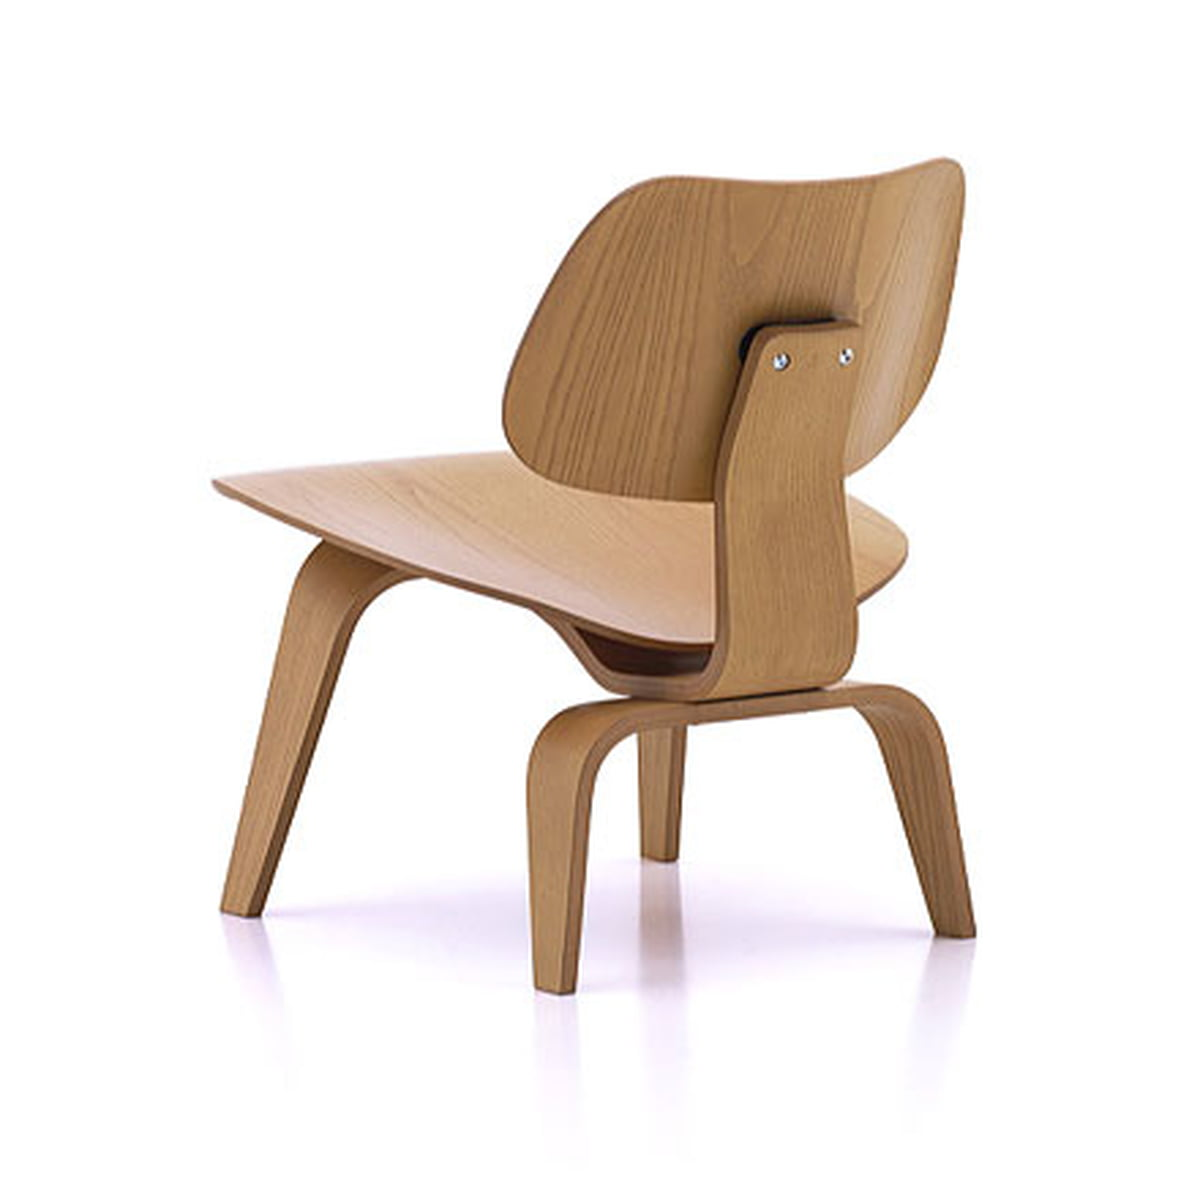 Plywood group lcw chair vitra shop for Vitra eames prix